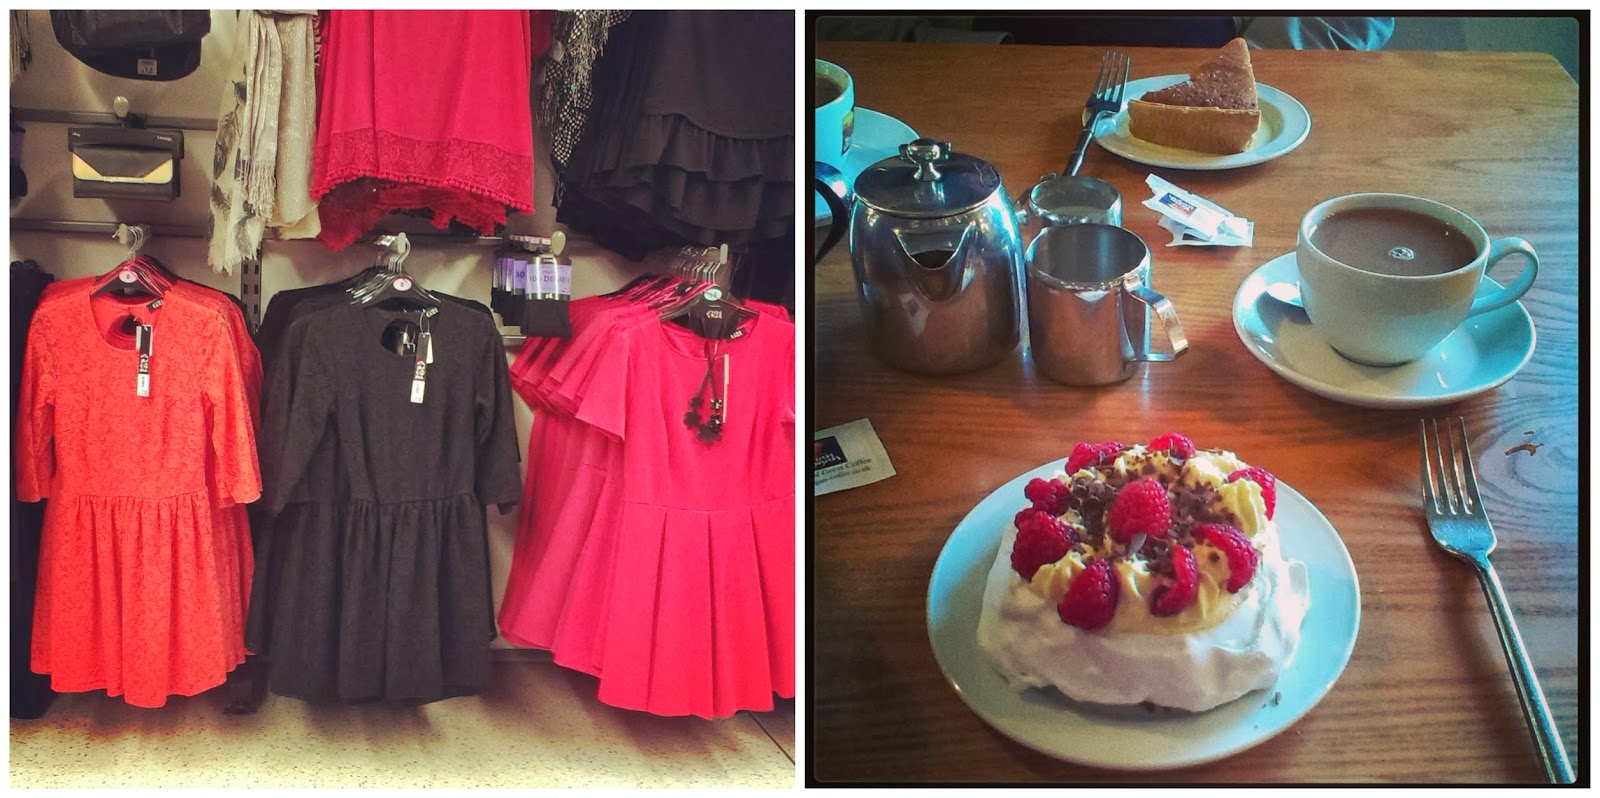 Asda dresses - Tea and Cake at Farringtons Farm Shop